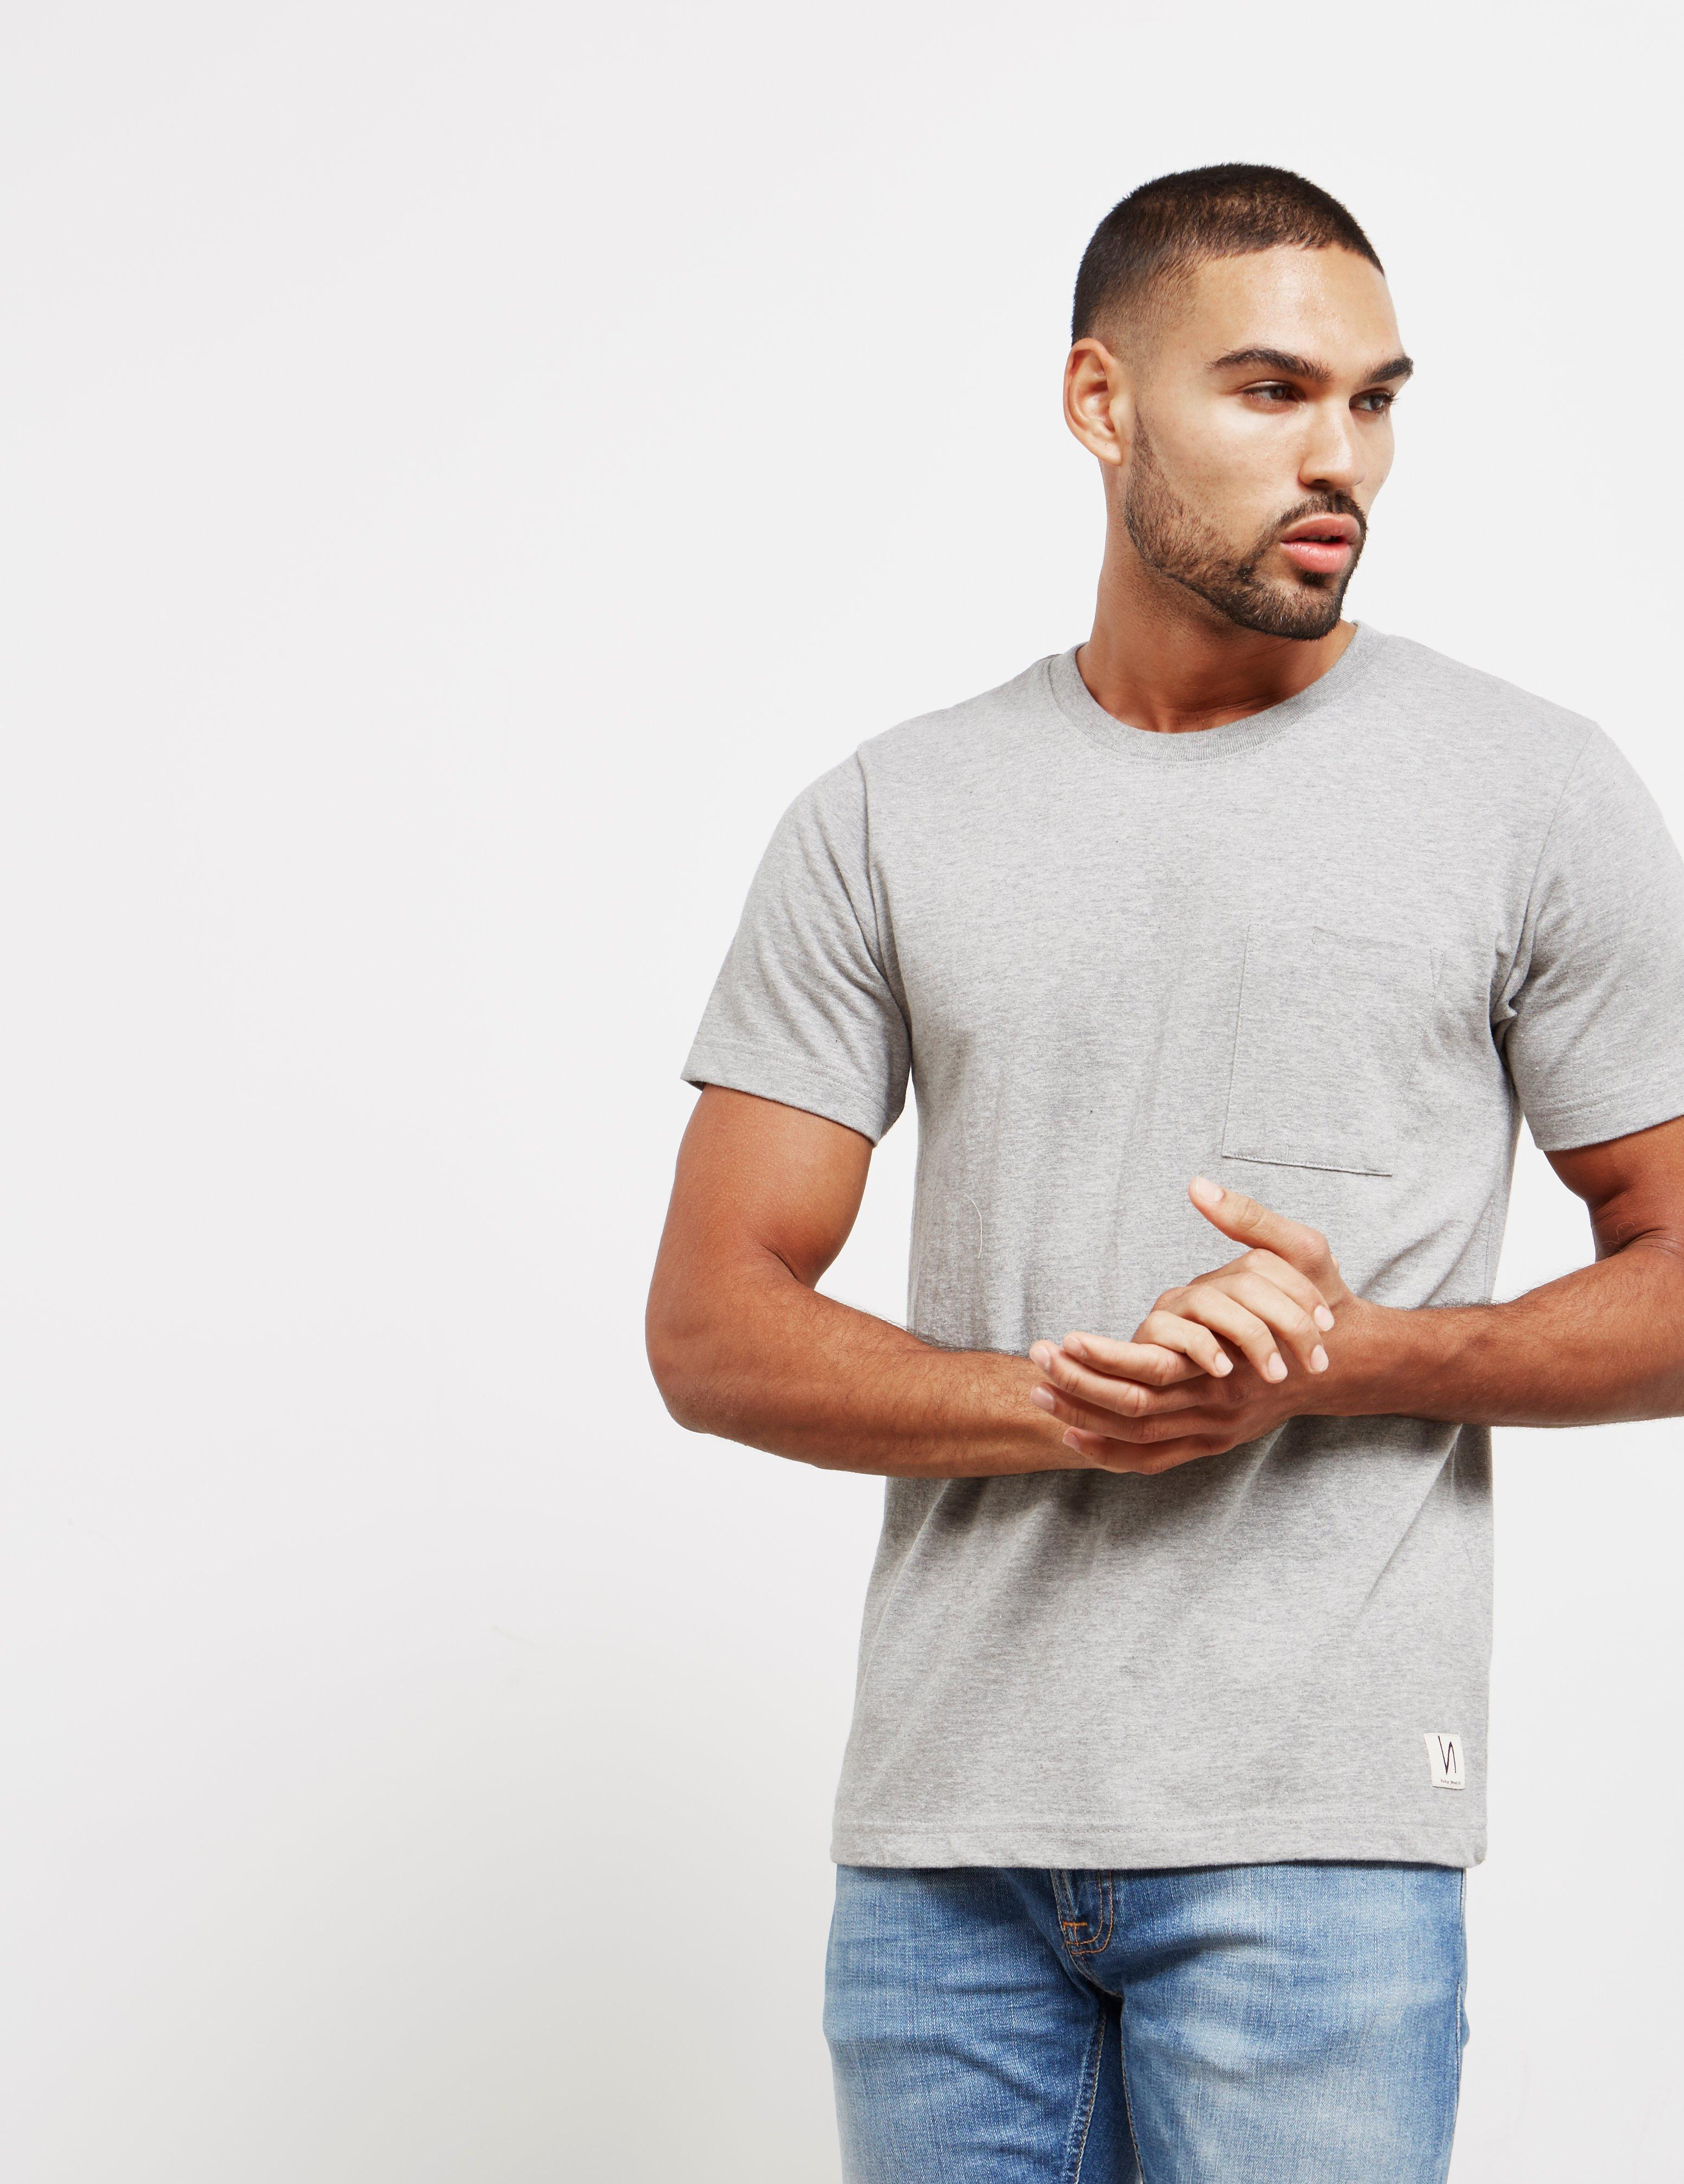 48efc0e1 Lyst - Nudie Jeans Mens Worker Short Sleeve T-shirt Grey in Gray for Men